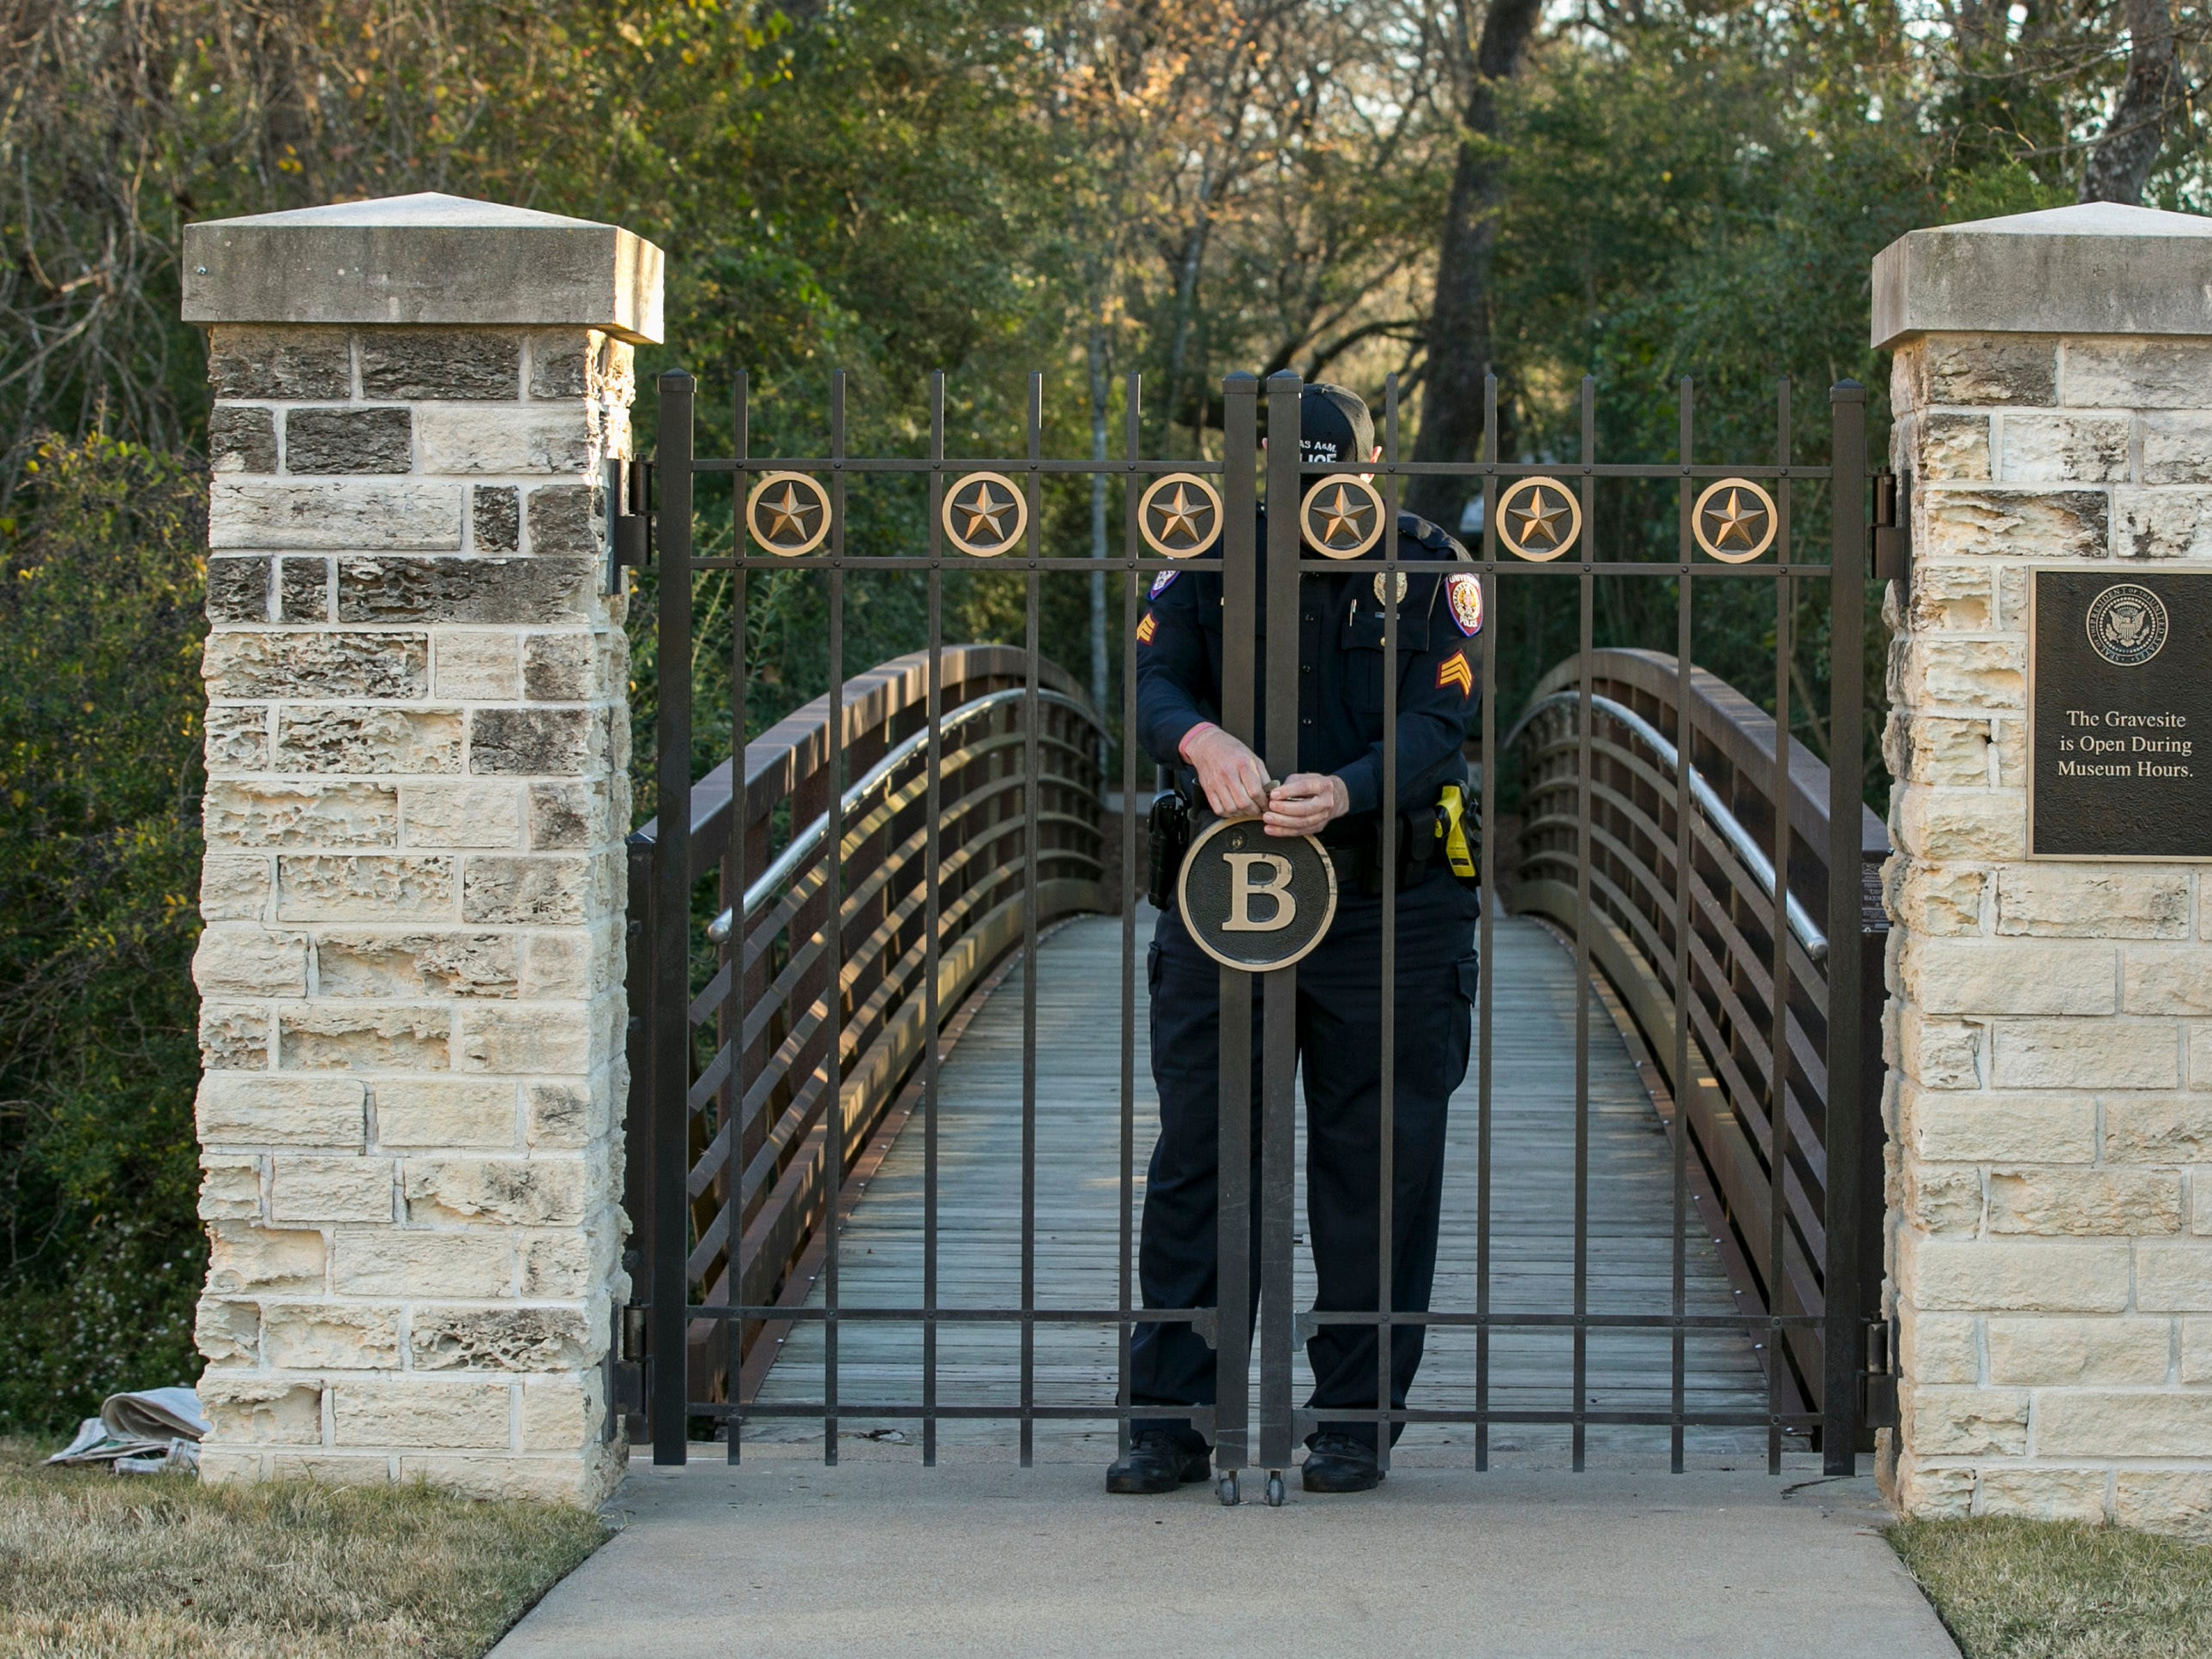 Sgt. Wayne Goldwater of the Texas A&M Police Department guards the burial site of George H.W. Bush and Barbara Bush at the George H.W. Bush Presidential Library at Texas A&M University in College Station, Texas, on Wednesday, Dec. 5, 2018.